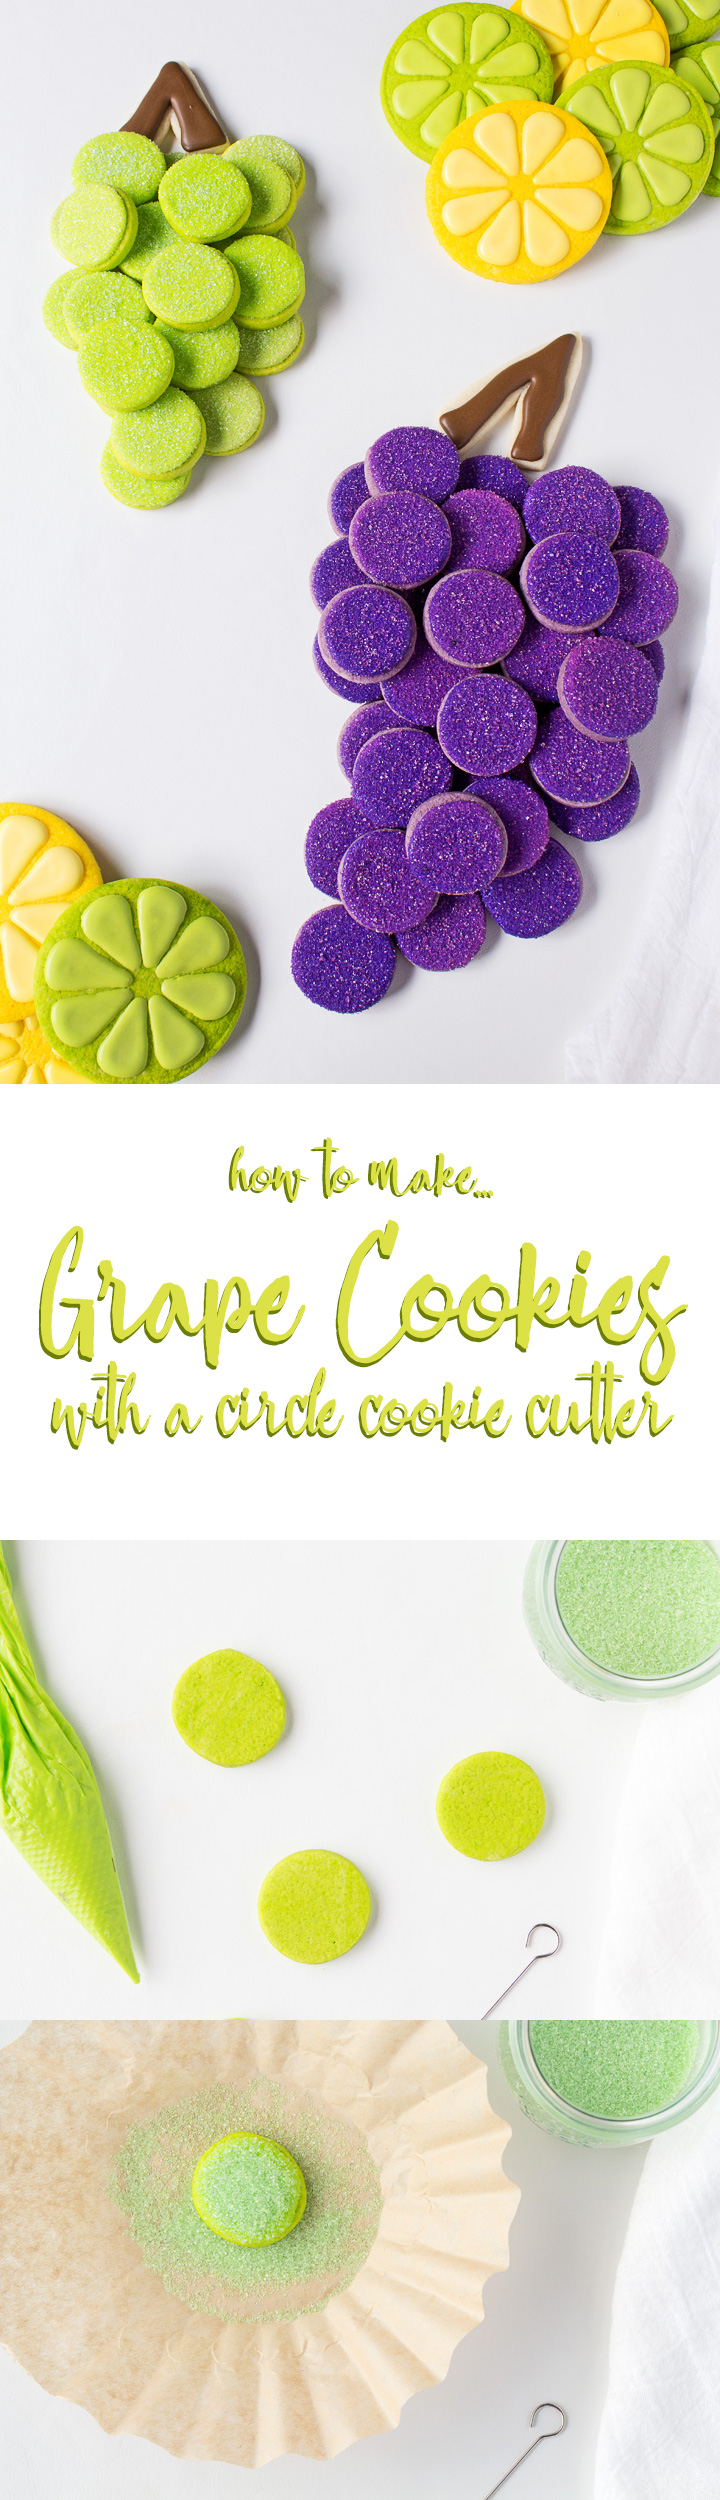 How to Make Grape Cookies | The Bearfoot Baker